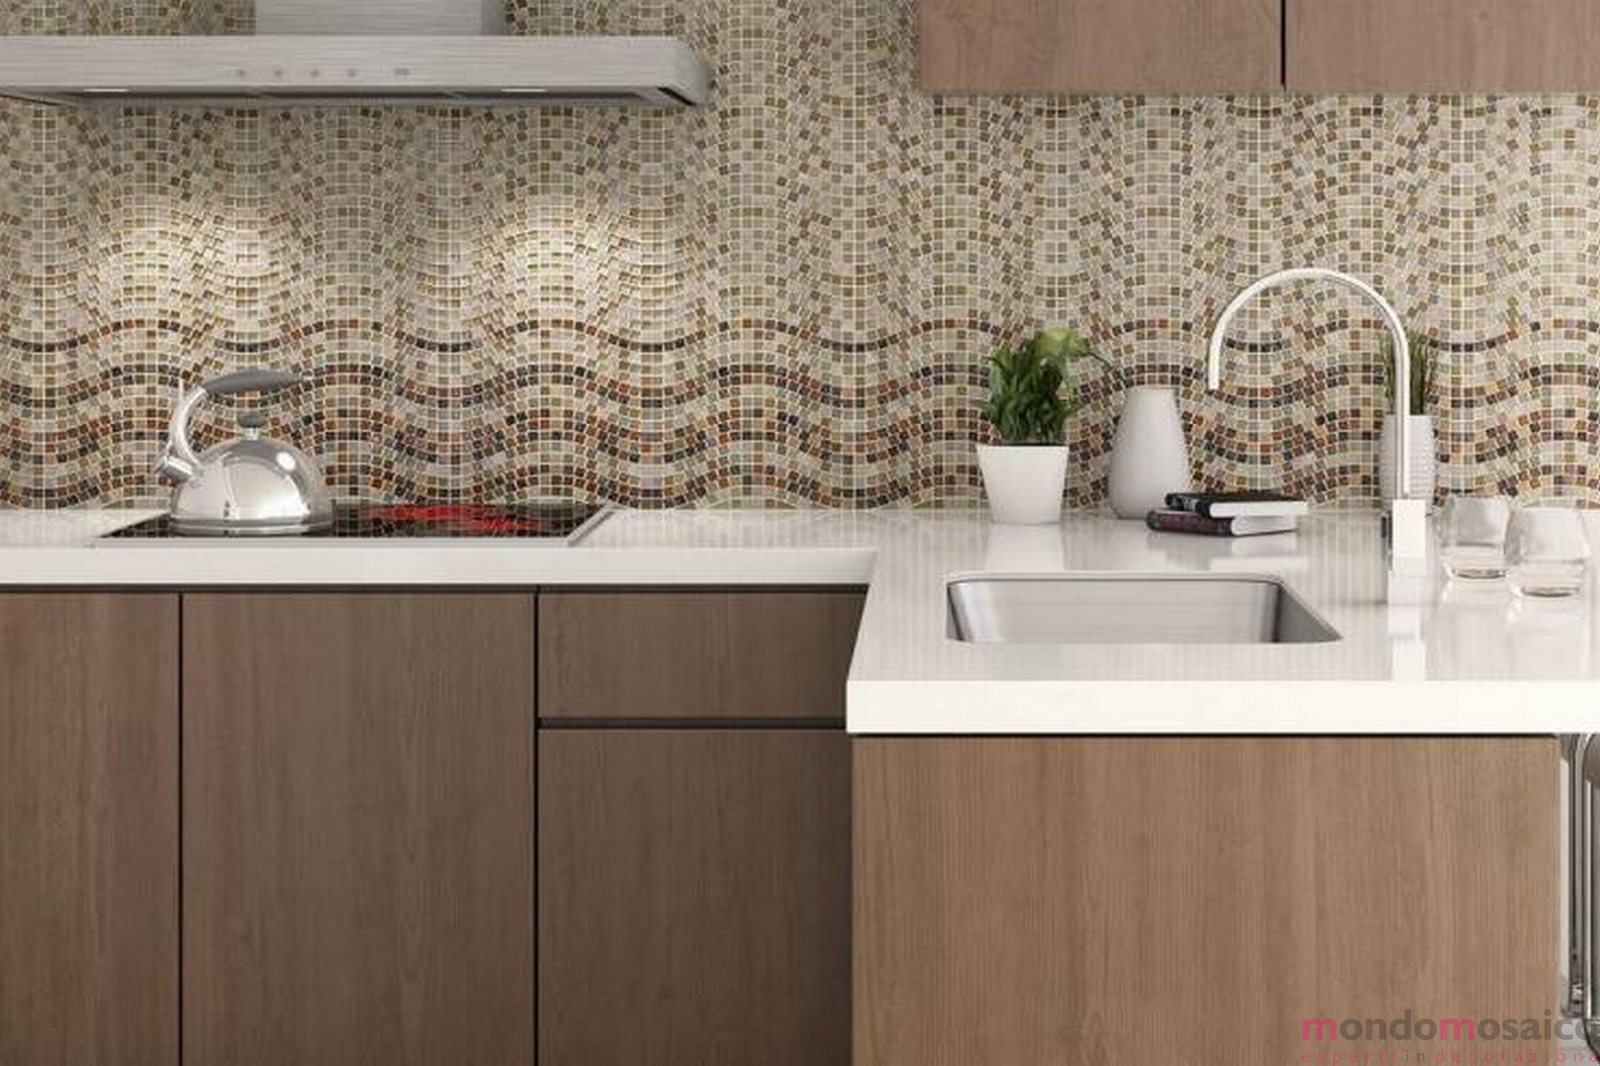 Stunning Mosaico Per Cucina Pictures - Skilifts.us - skilifts.us